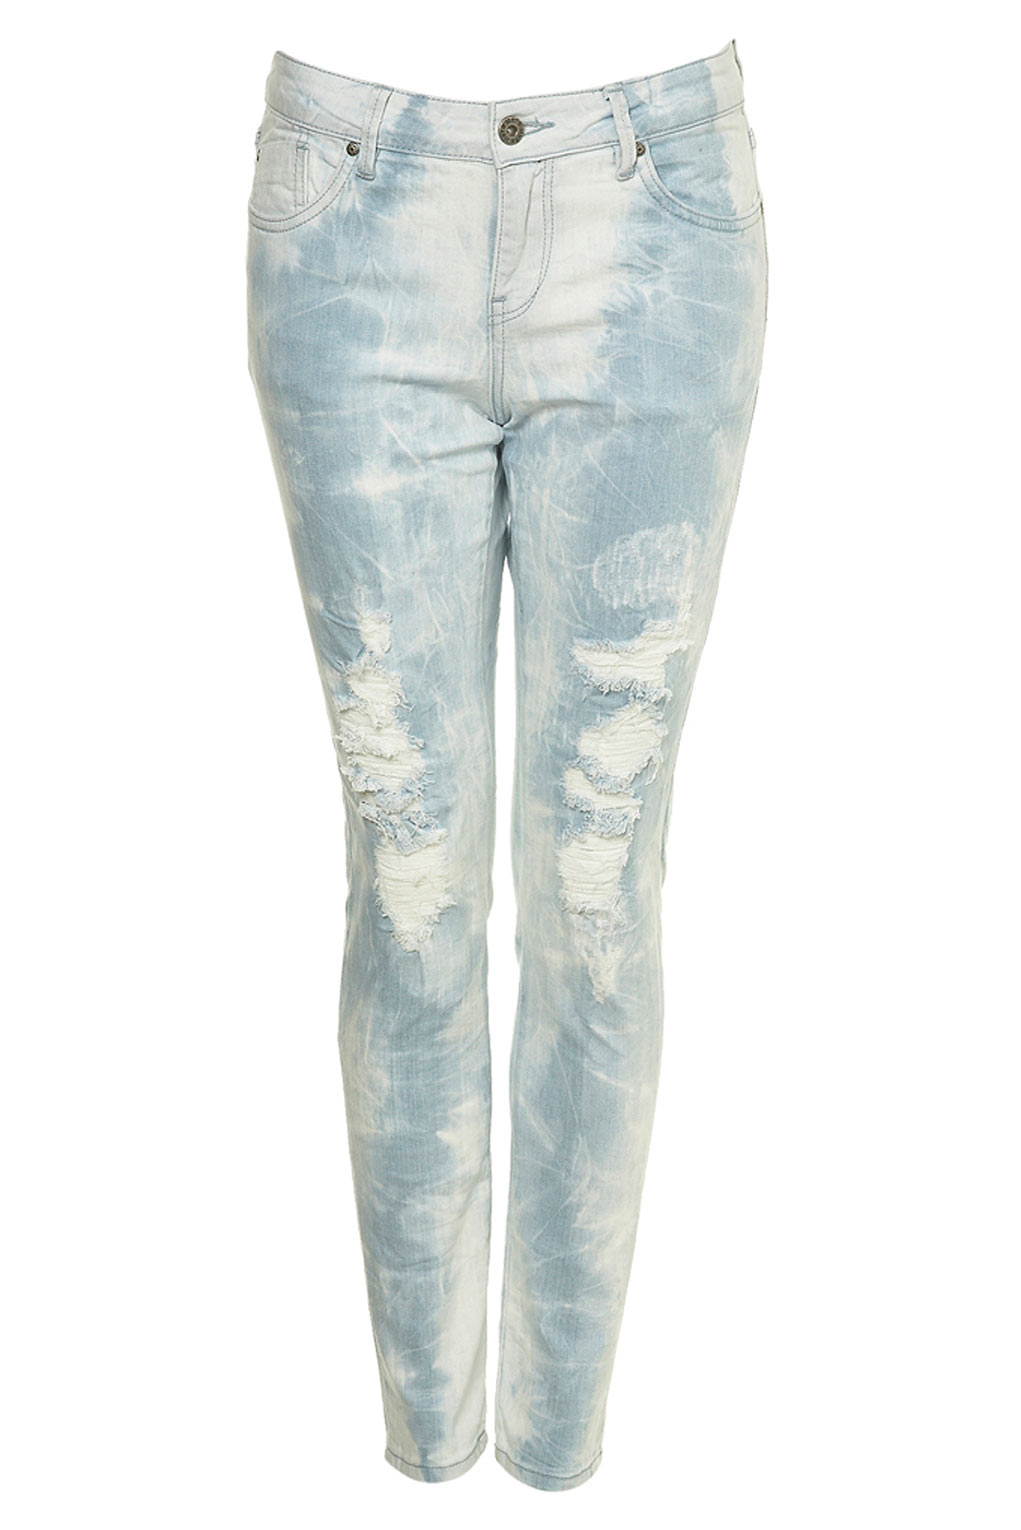 Bleached torn skinny jeans – Global fashion jeans models